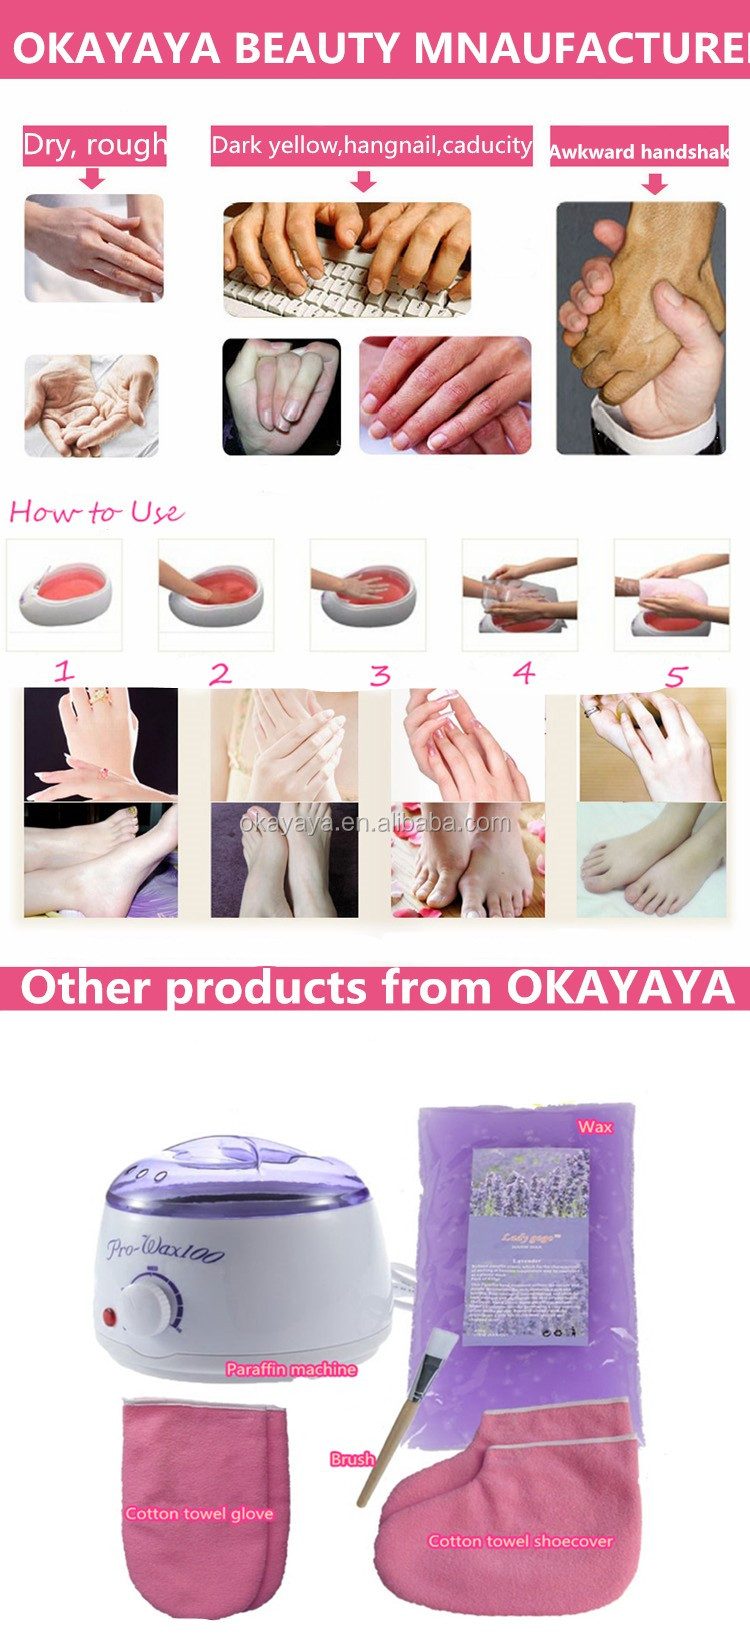 2019 trending amazon paraffin wax beauty paraffin wax bath for nail bar